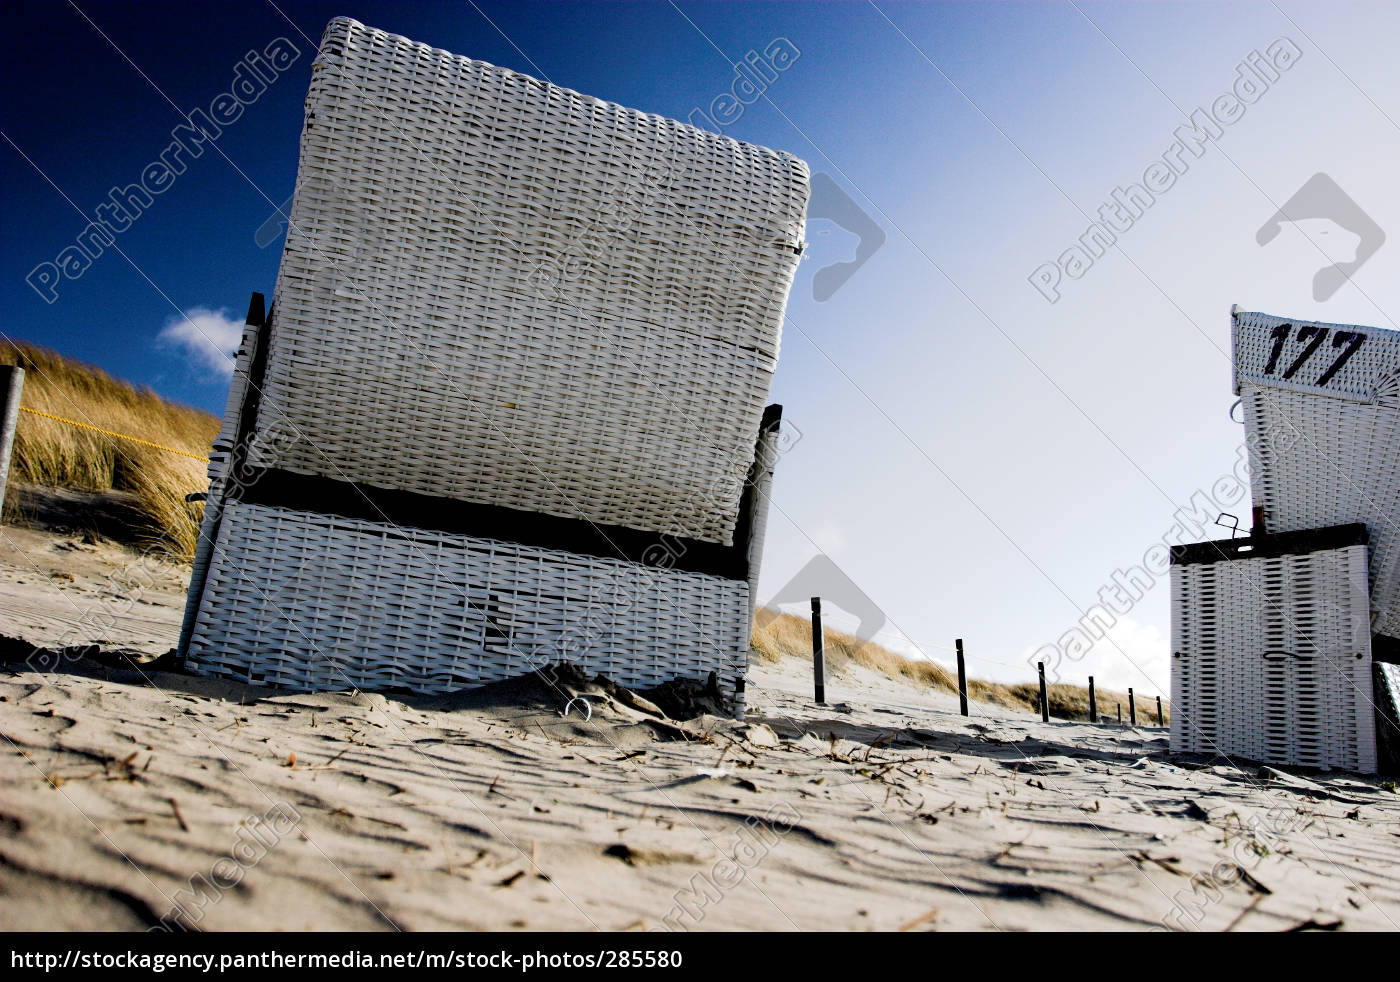 blue, sky, beach, chair - 285580